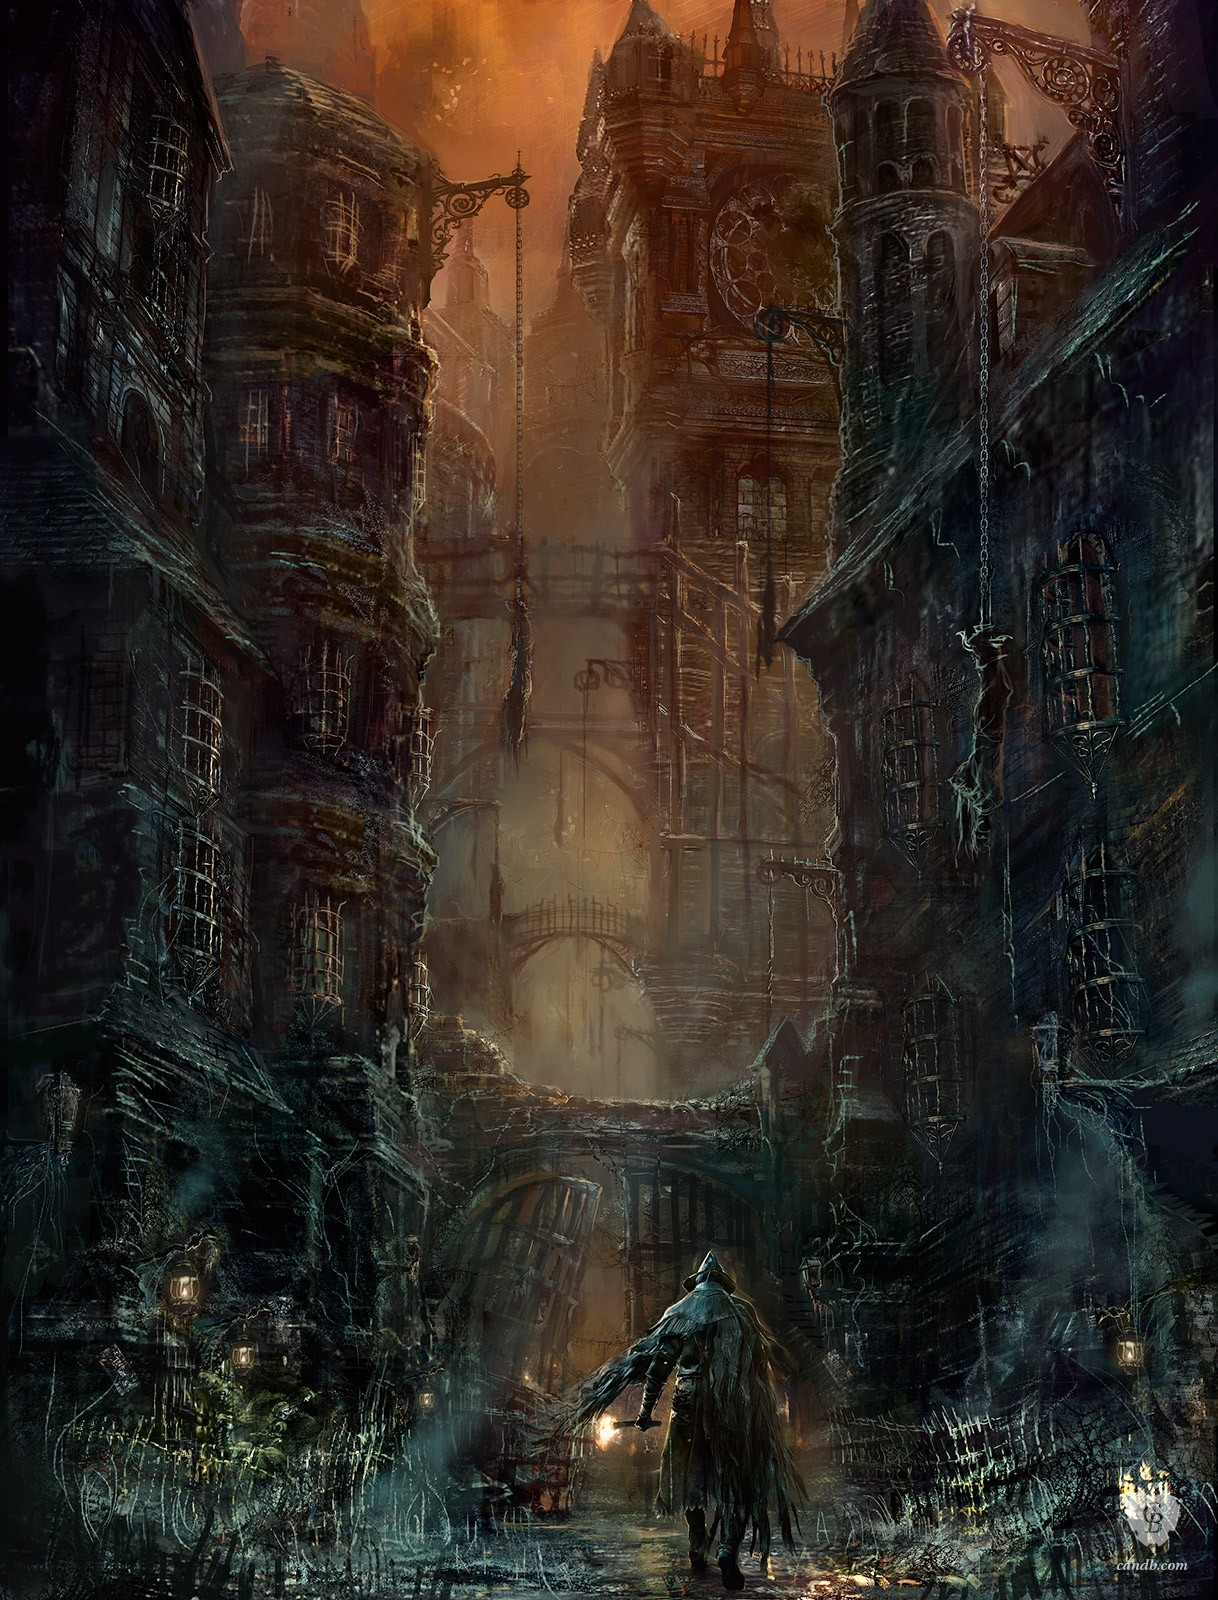 The Geeky Nerfherder: Cool Art: 'Bloodborne' & 'The Order: 1886